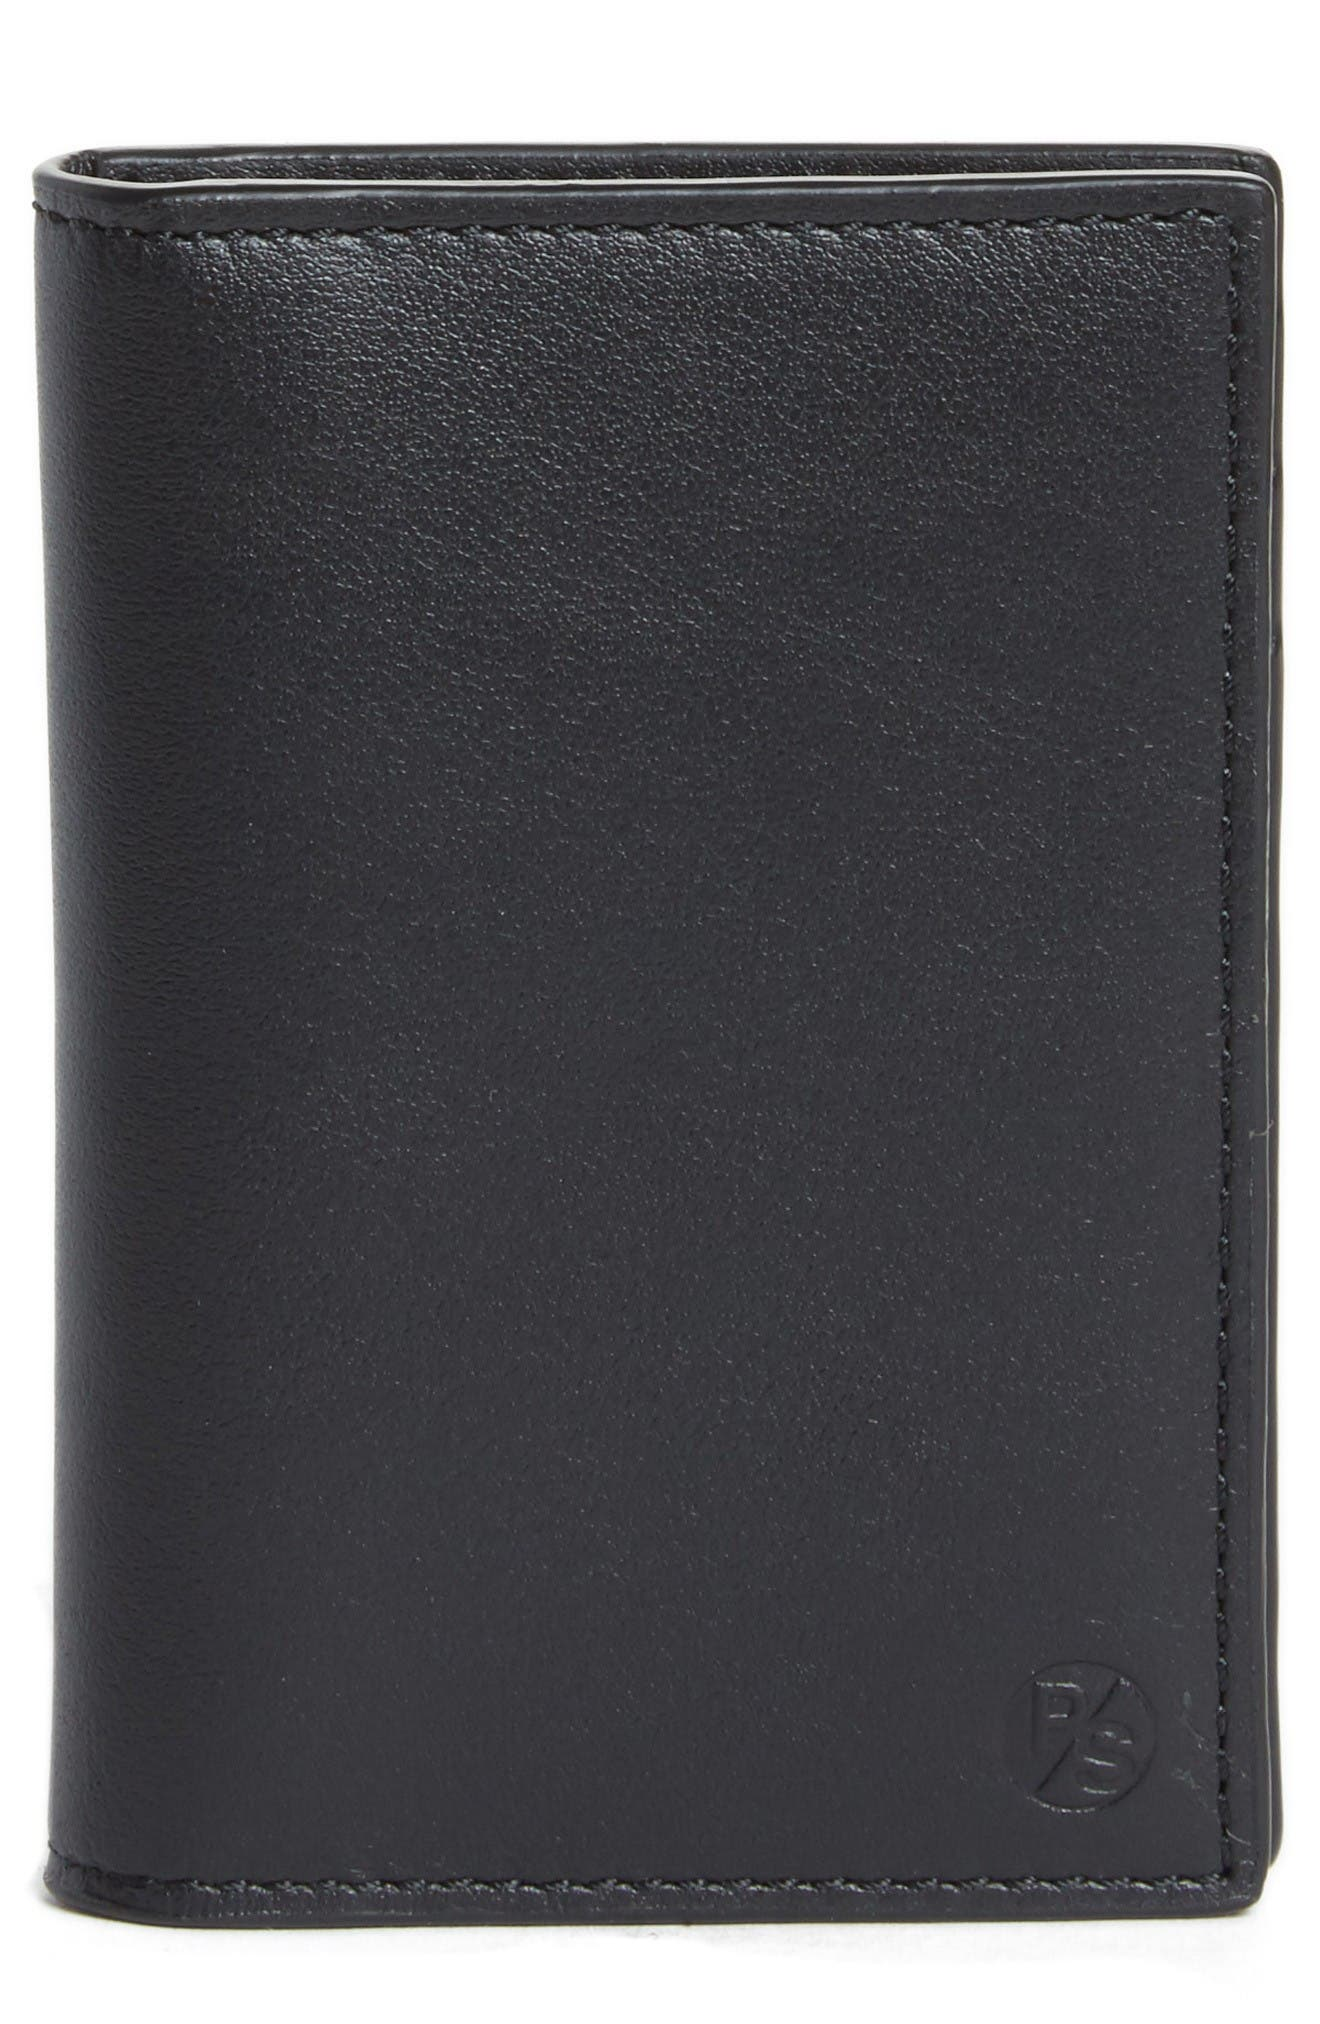 Color Accent Leather Wallet,                         Main,                         color, Black